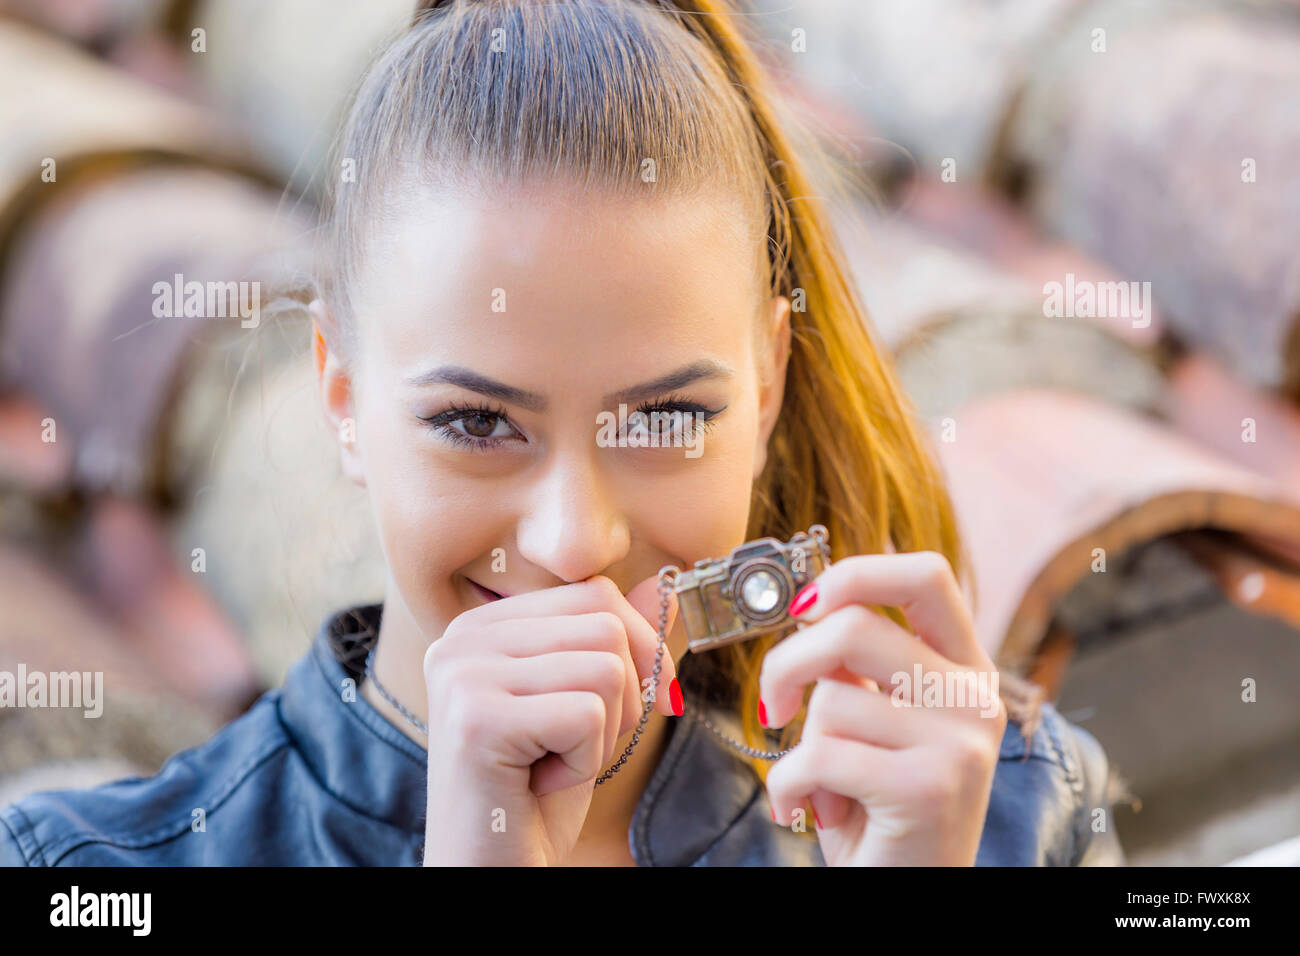 Tiny model camera and teen portrait outdoors ponytail pony-tail hair